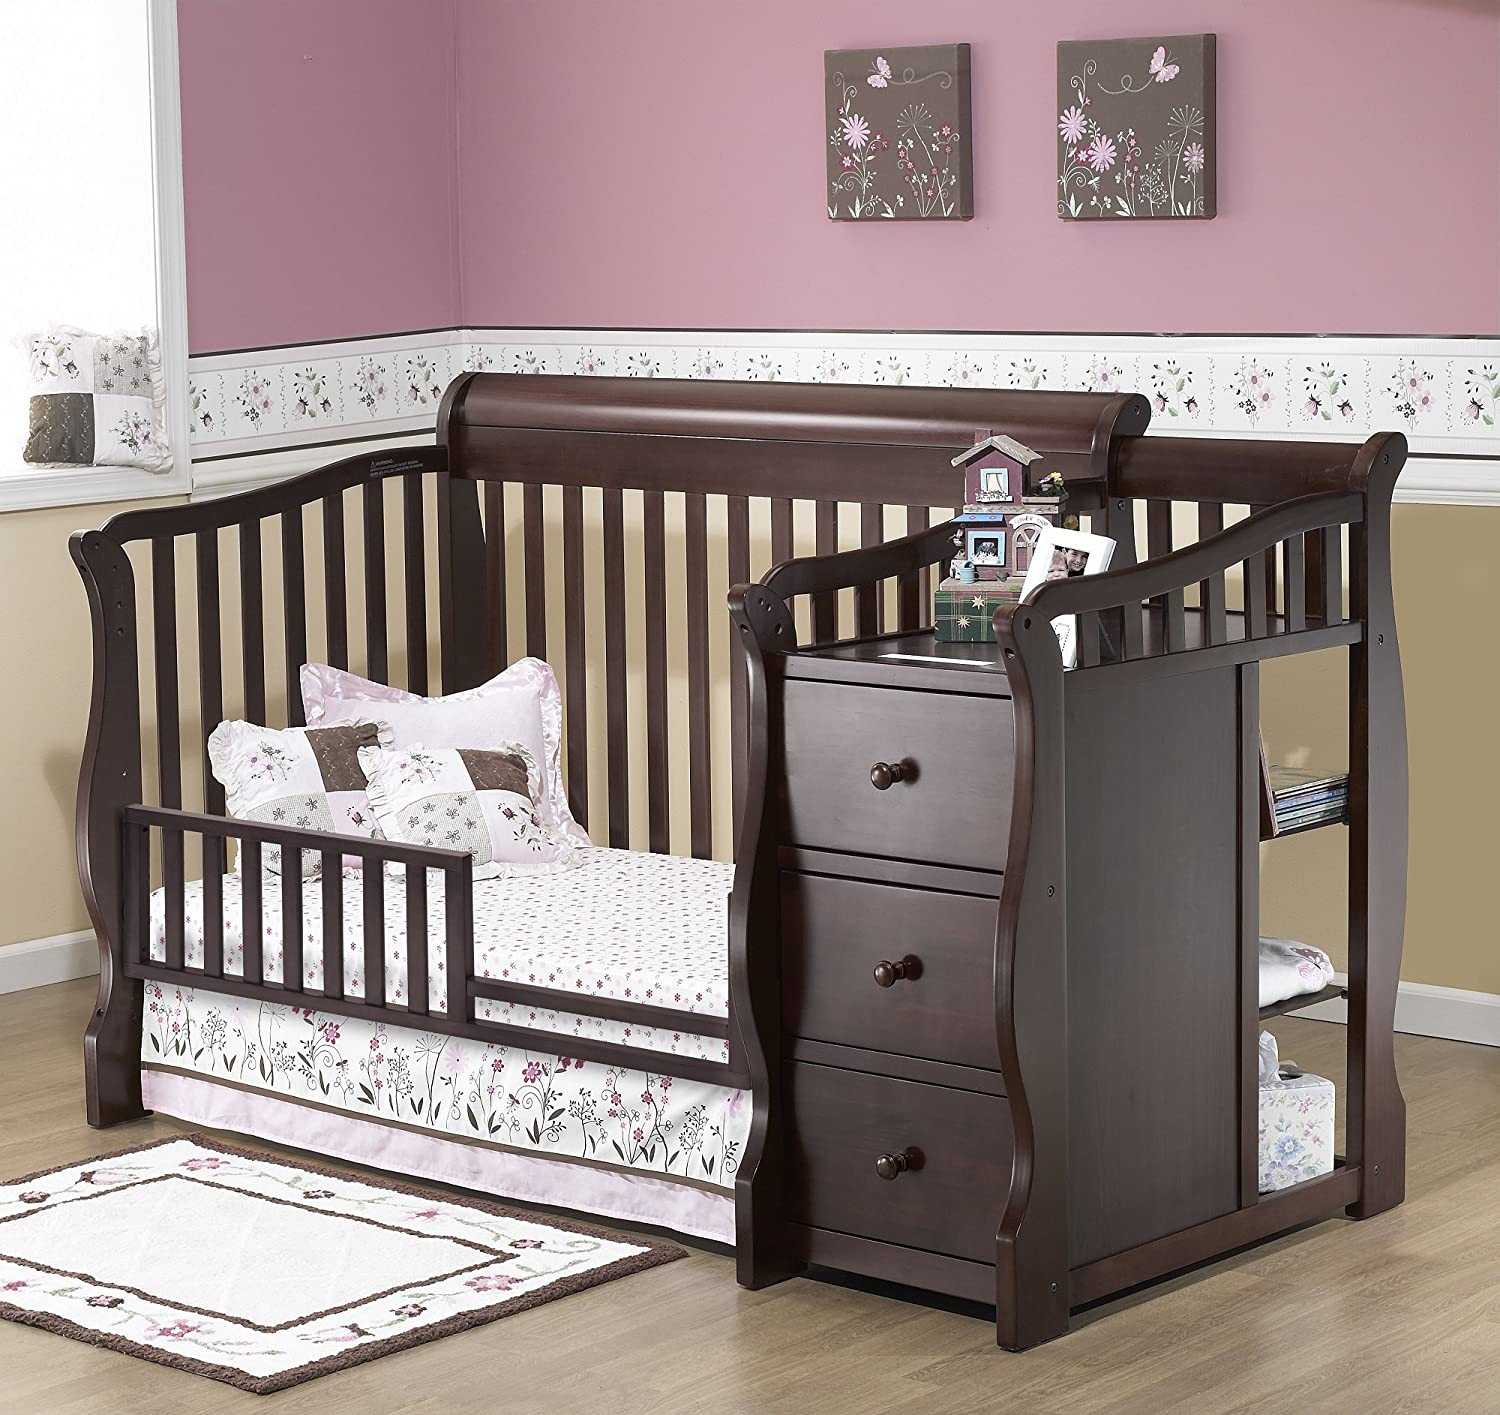 calabria crib of storkcraft cribs table changing set n dresser changer fresh